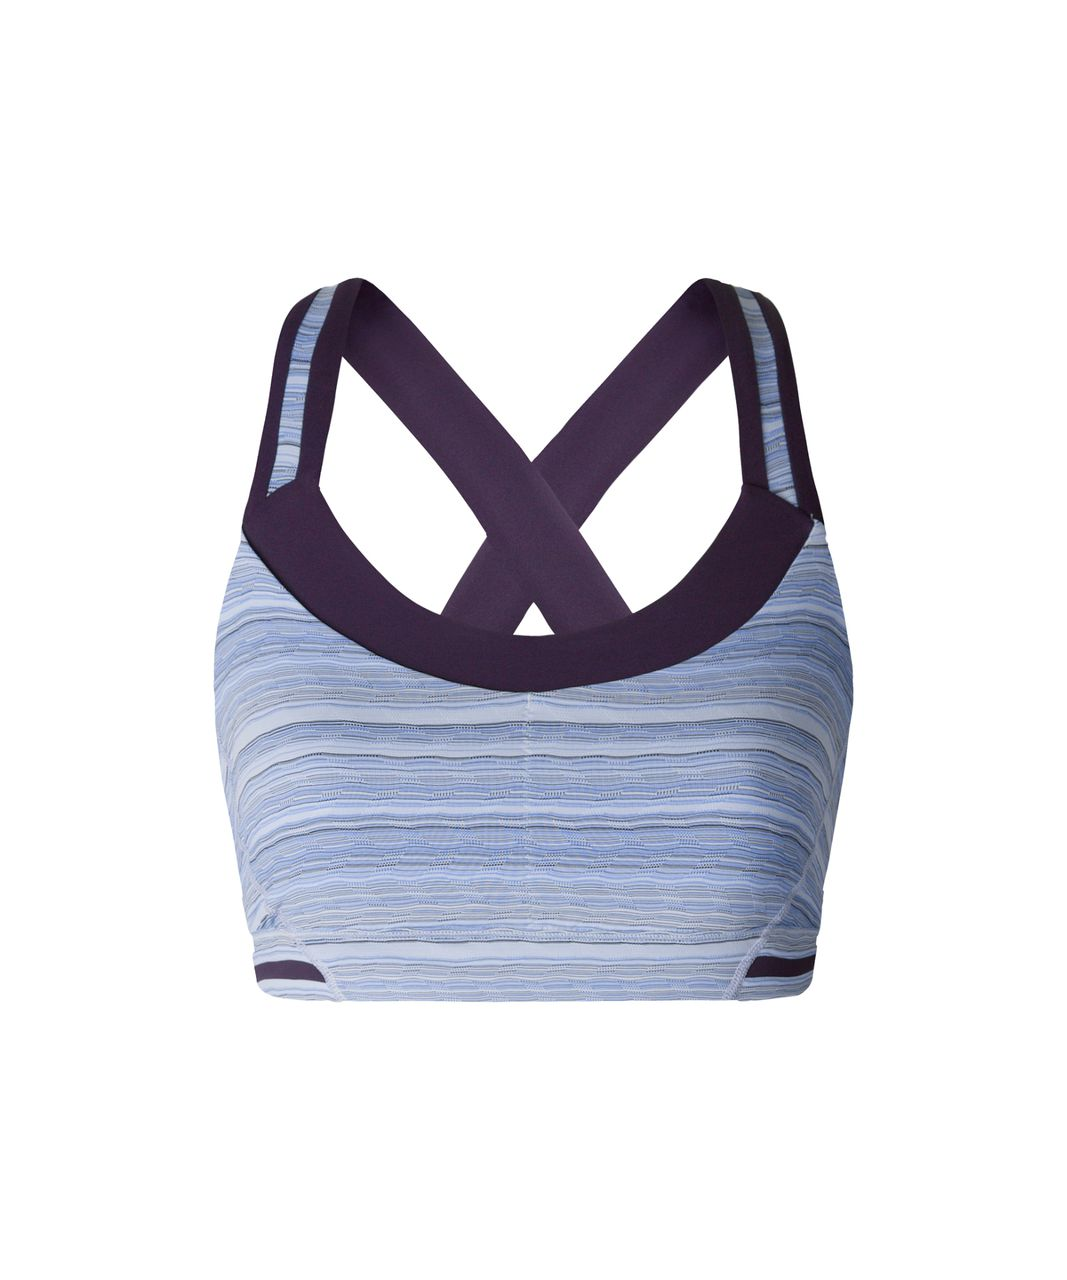 Lululemon Rack Pack Bra - Wave Twist Lilac Caspian Blue / Deep Zinfandel